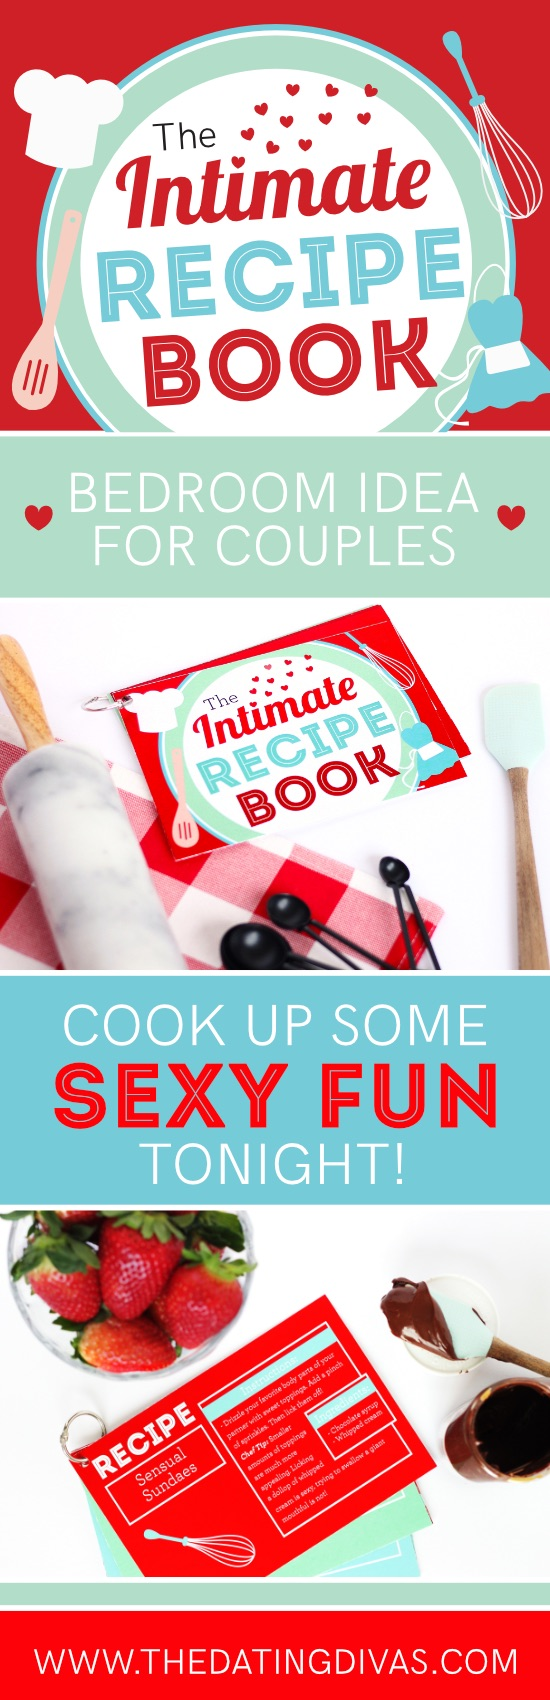 Intimate Recipe Book Sexy Ideas for Couples #bedroomideas #sexyideasforcouples